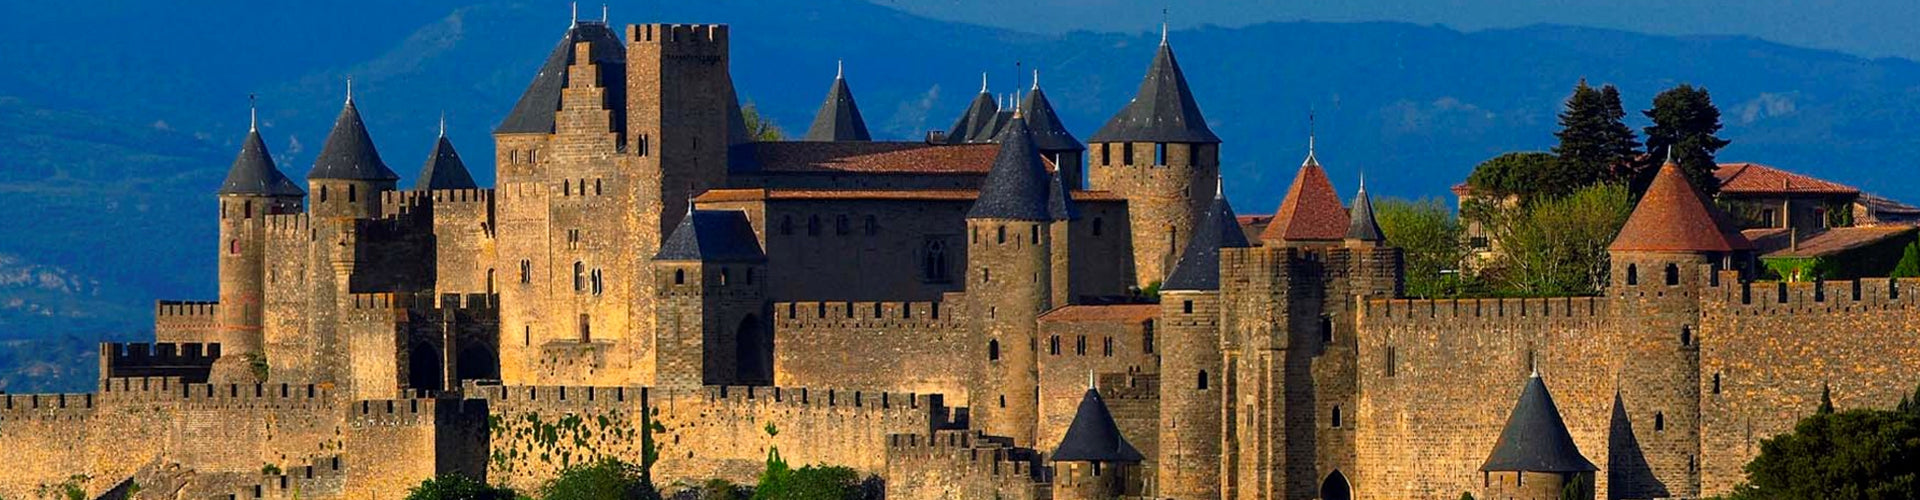 Town of Carcassonne in the Languedoc